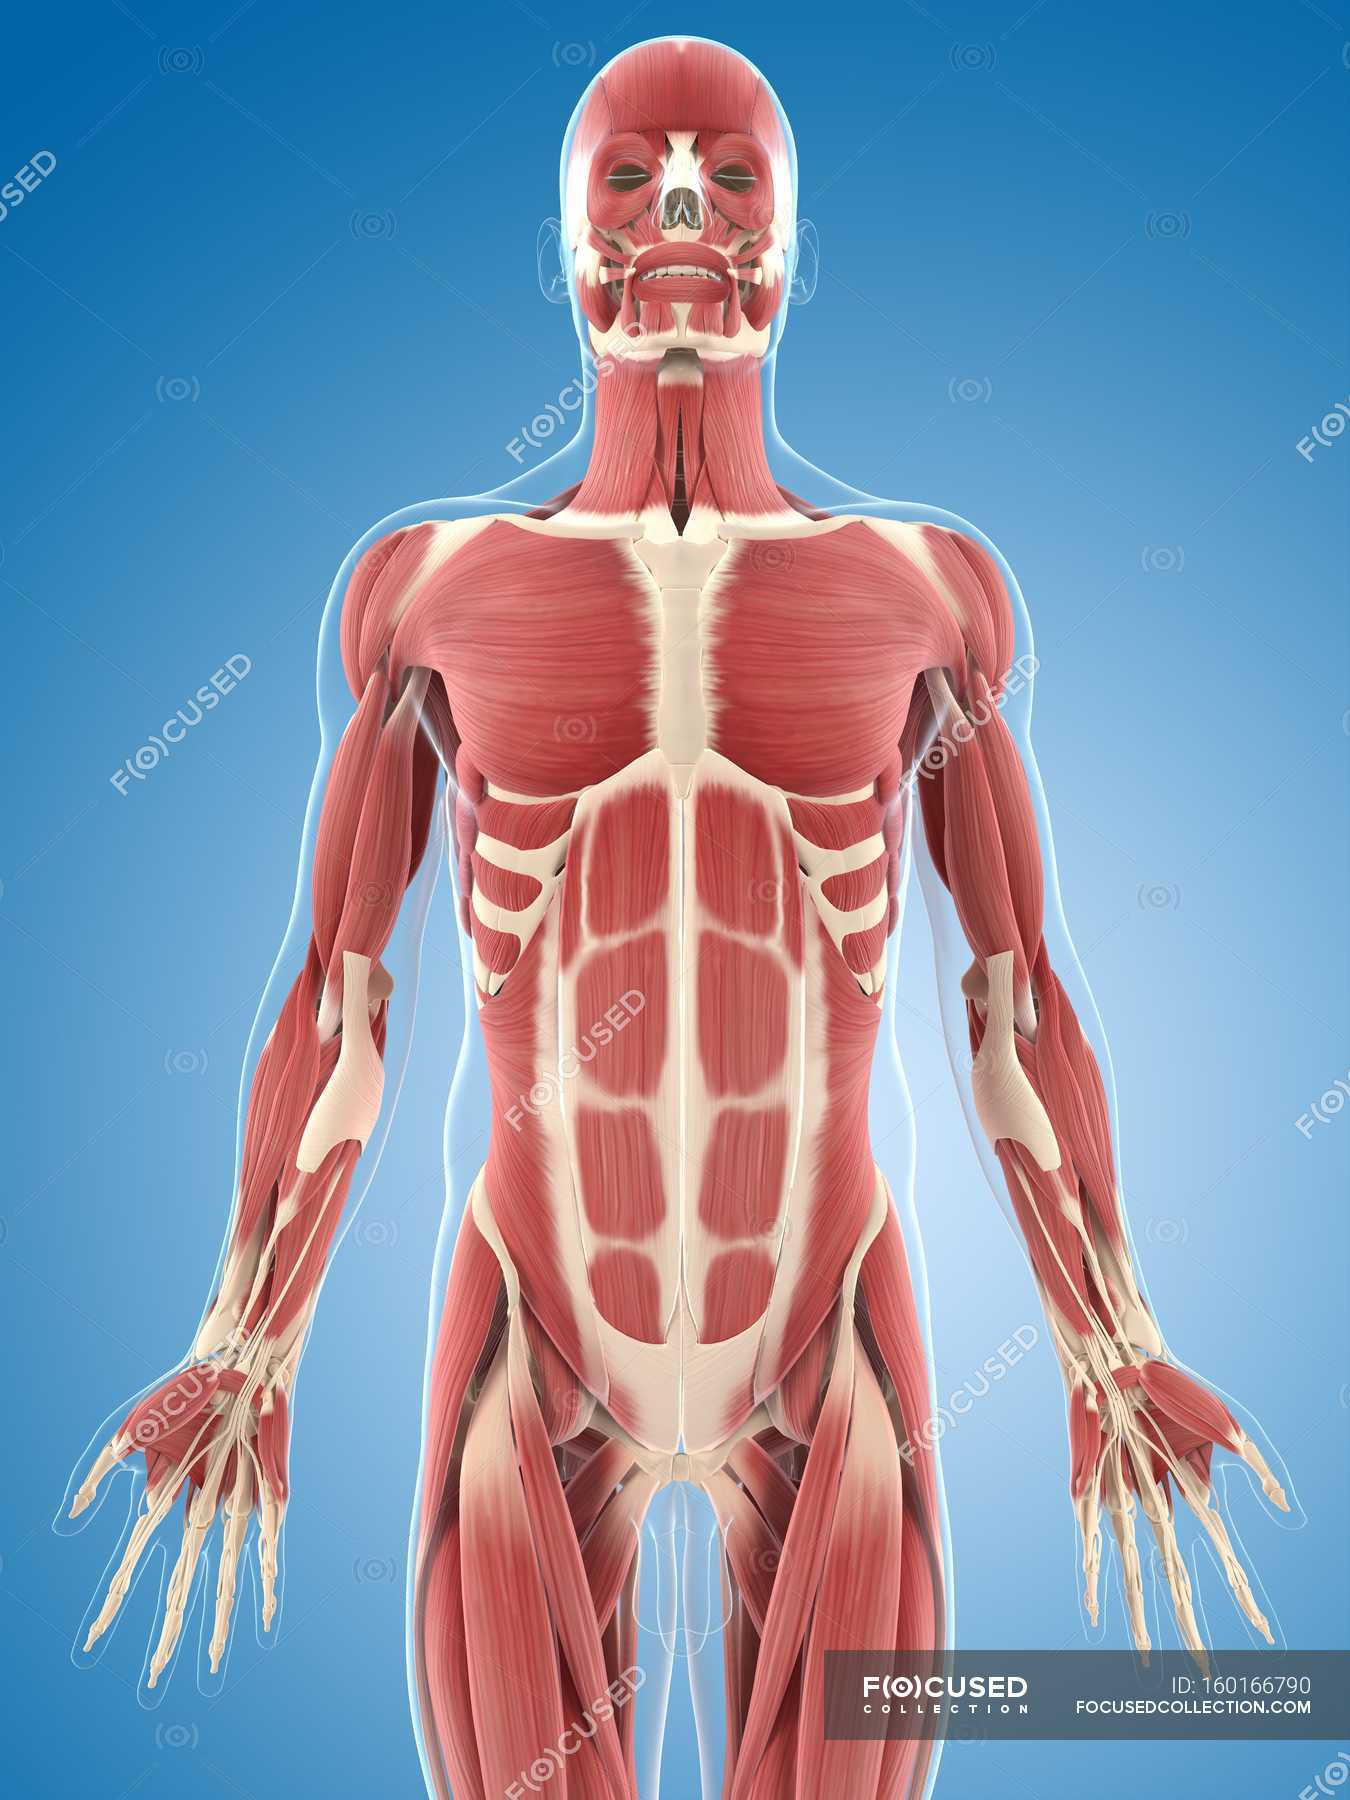 Male chest musculature — Stock Photo   #160166790